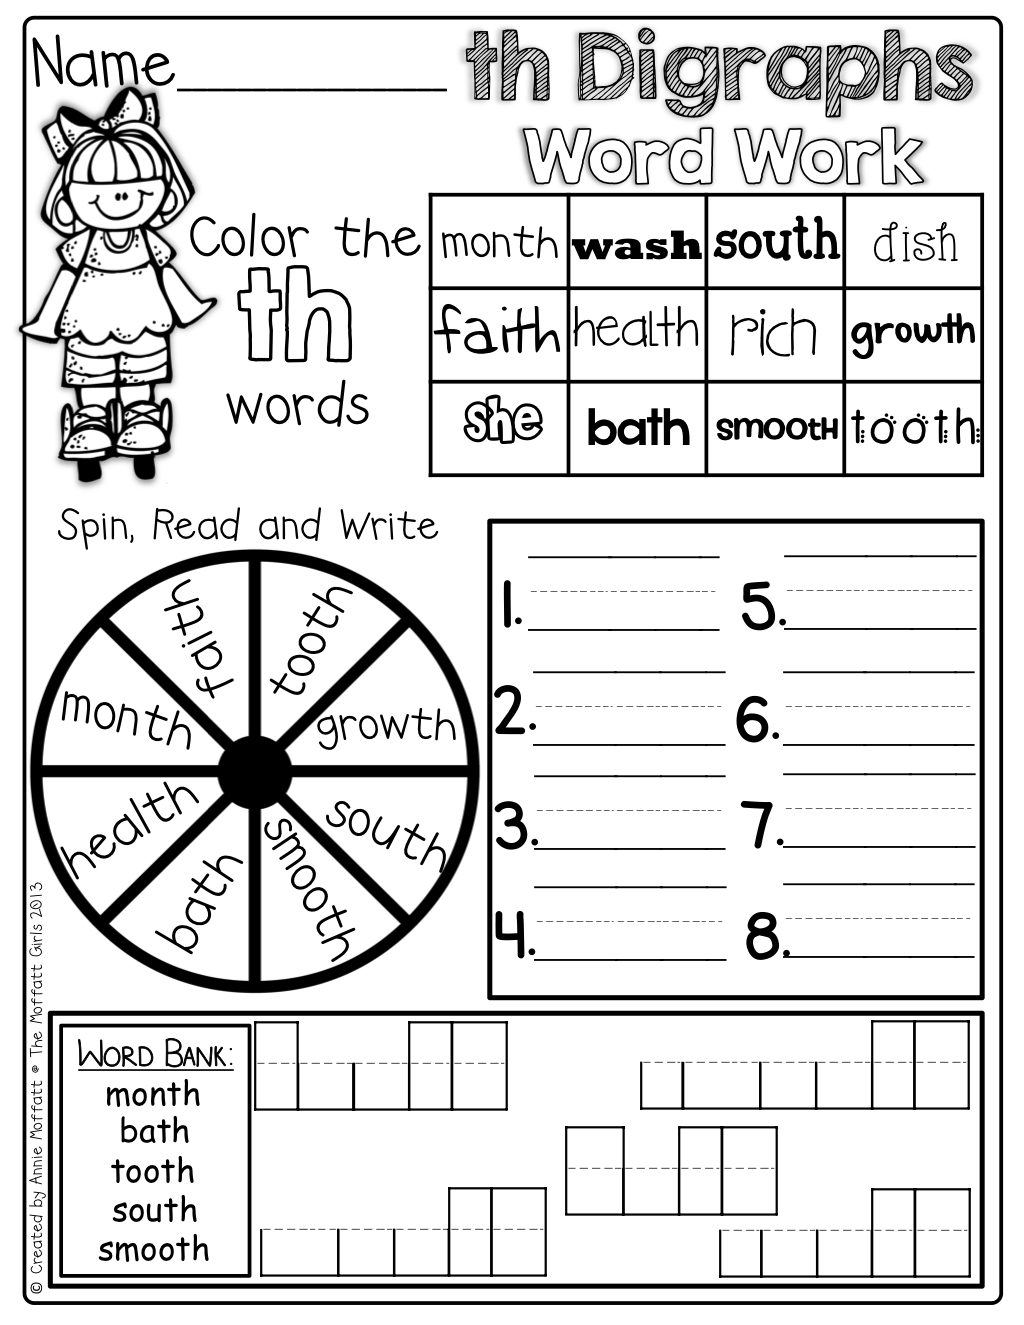 Digraphs Word Work Color The Digraph Words Spin And